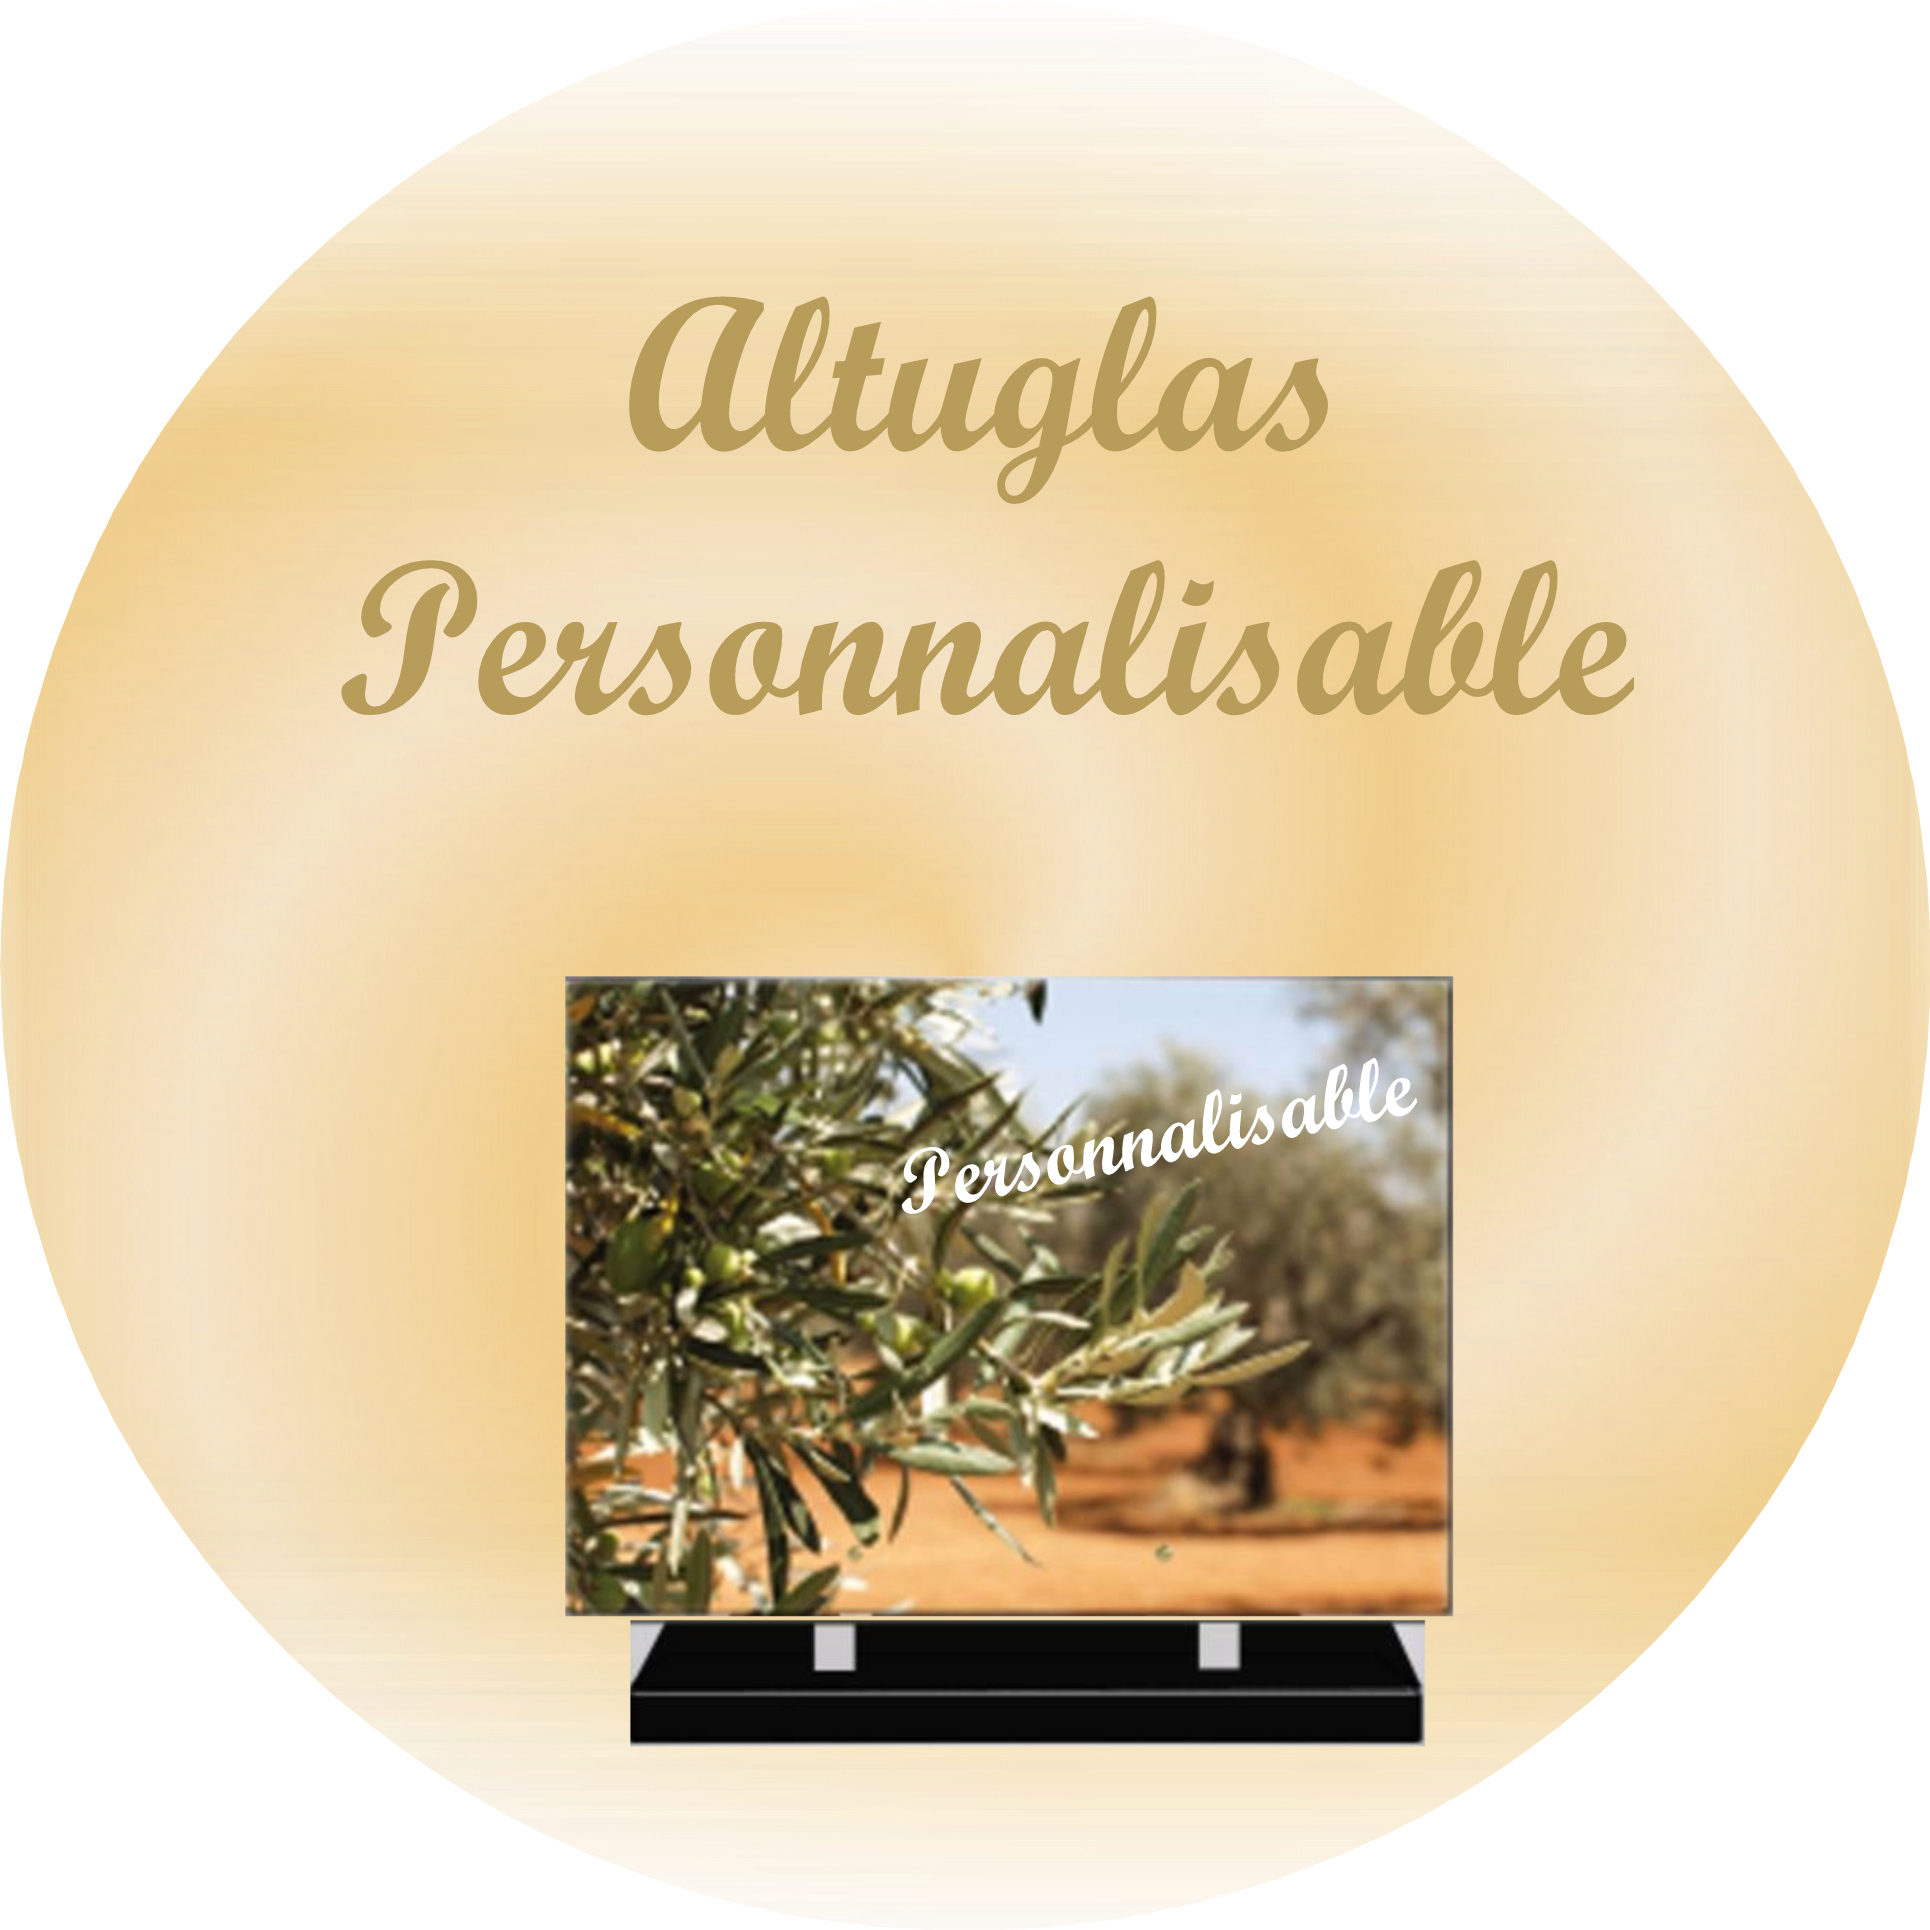 PLAQUES FUNERAIRES MODERNES PERSONNALISABLES RECTANGLE ABLAINZEVELLE